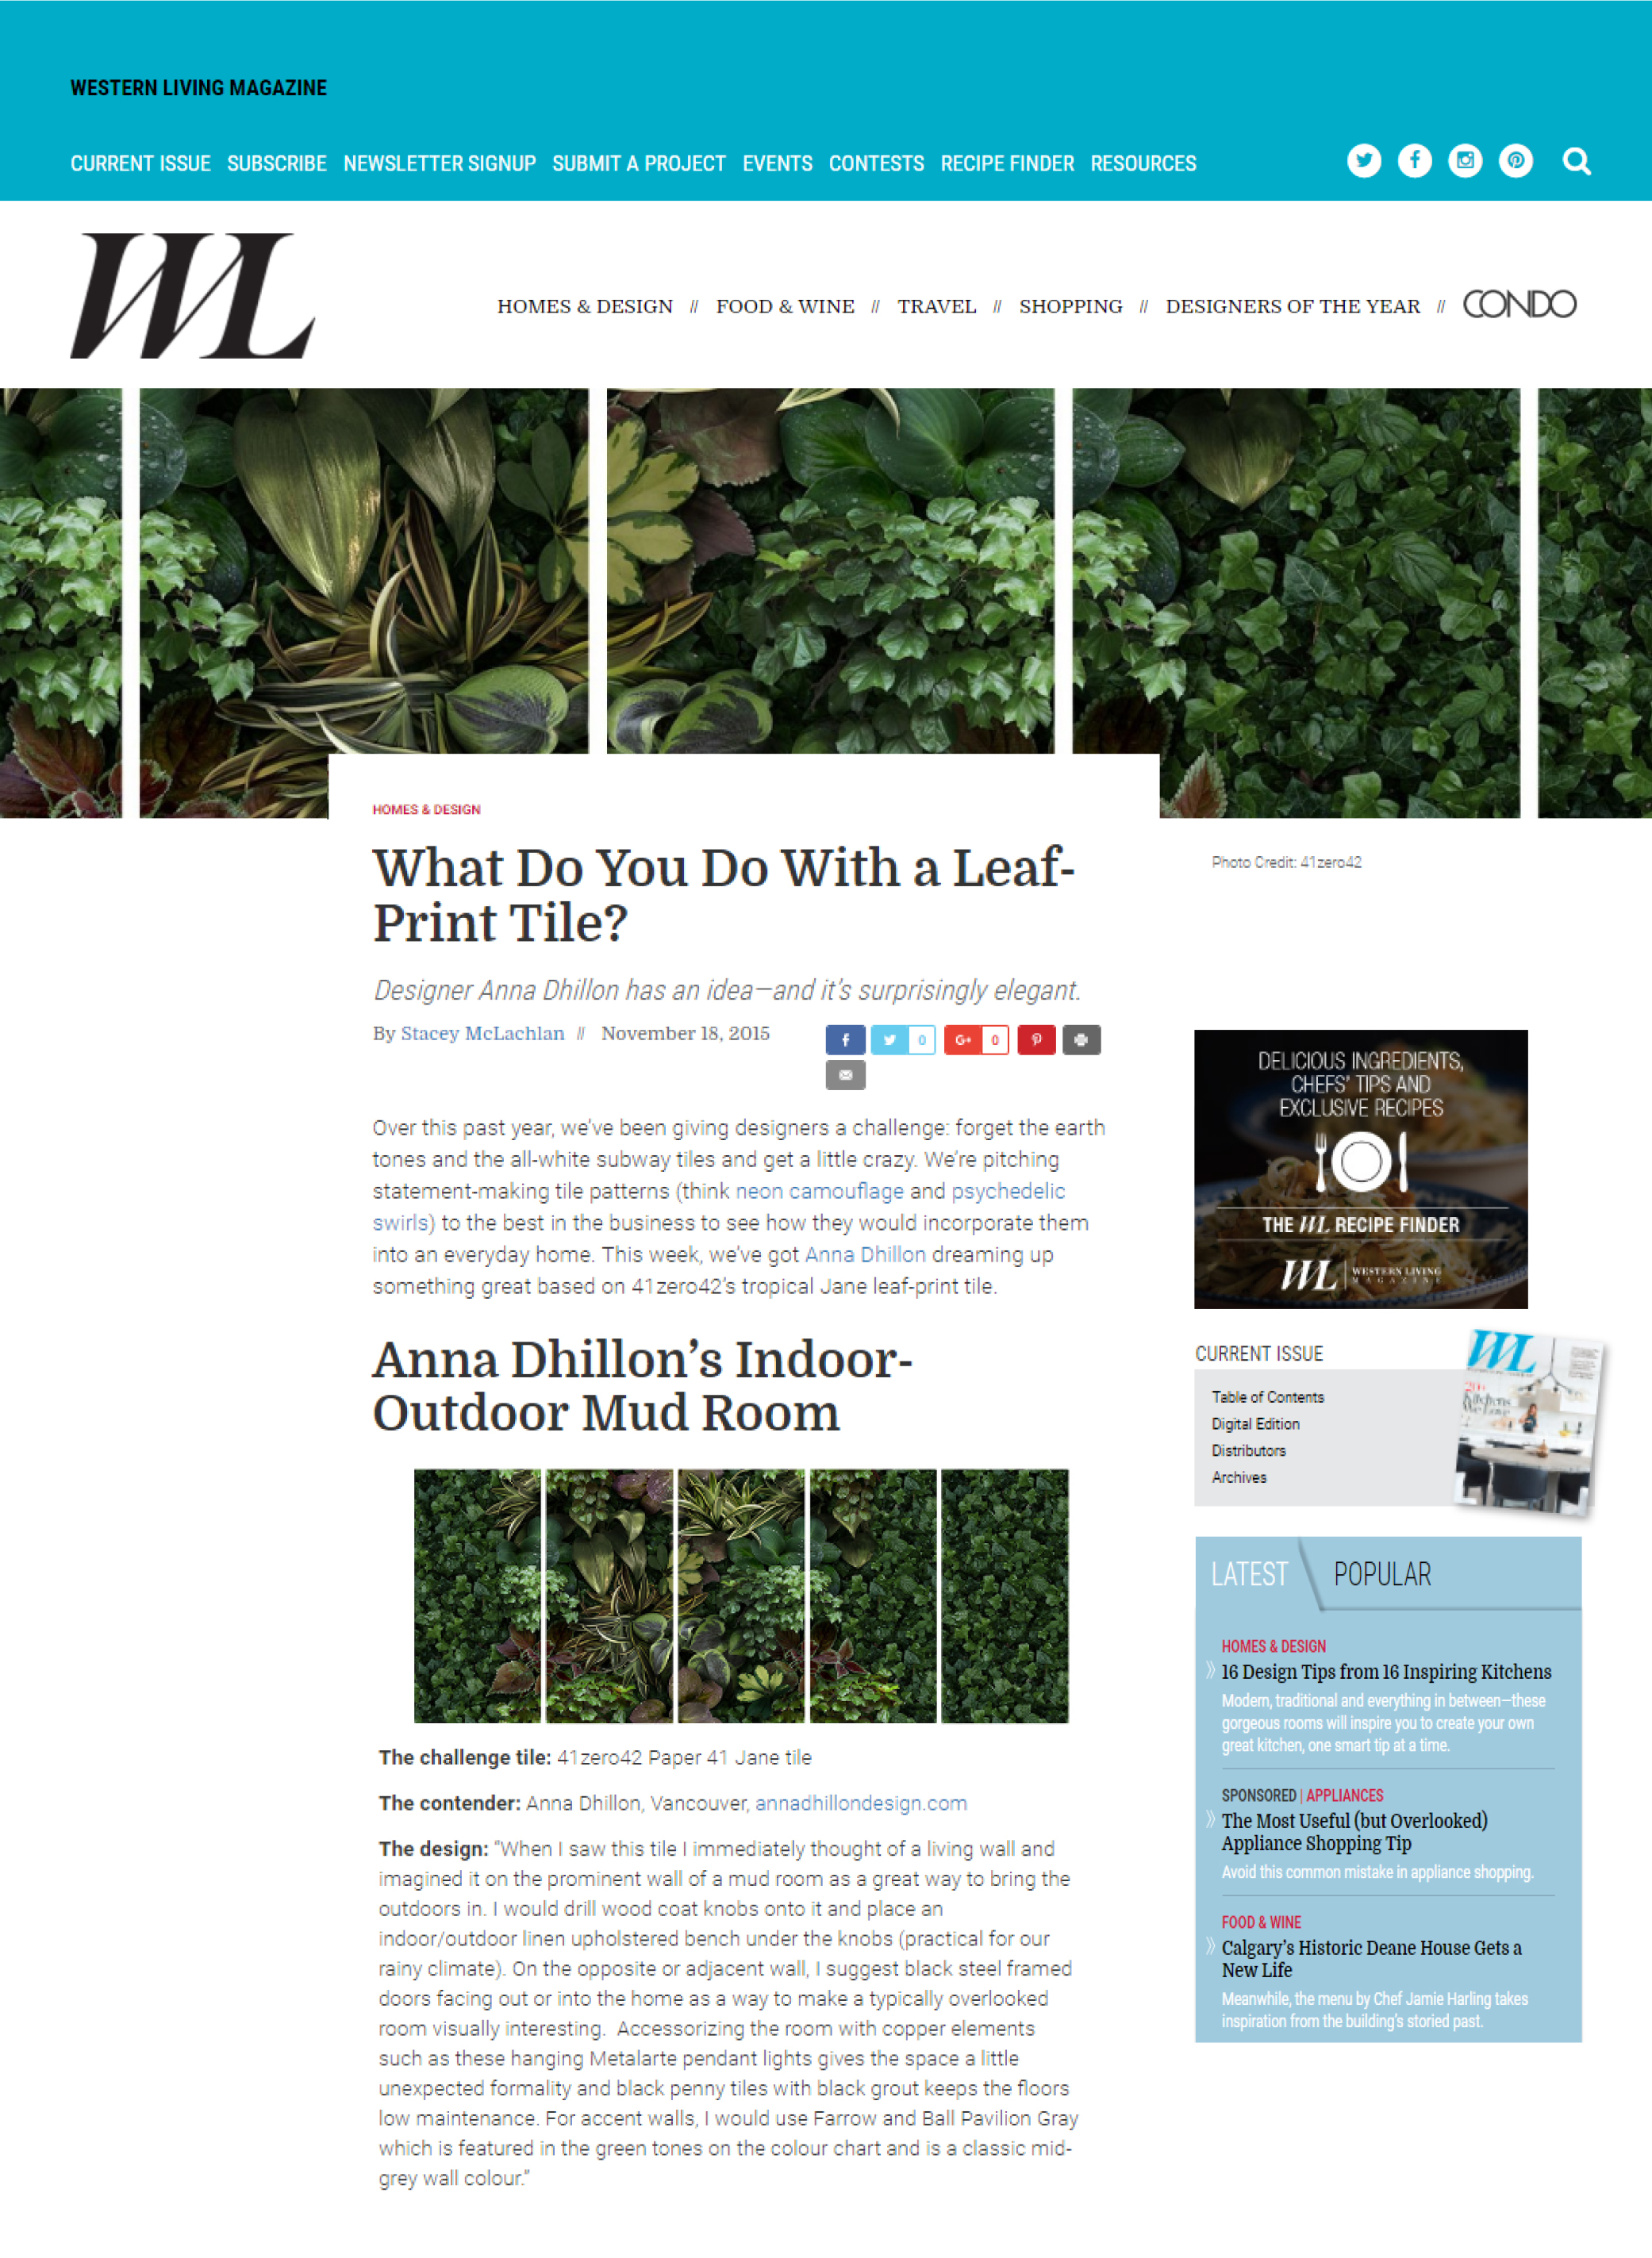 15_11-WLM-What_Do_You_Do_With_A_Leaf_Print_Tile.jpg